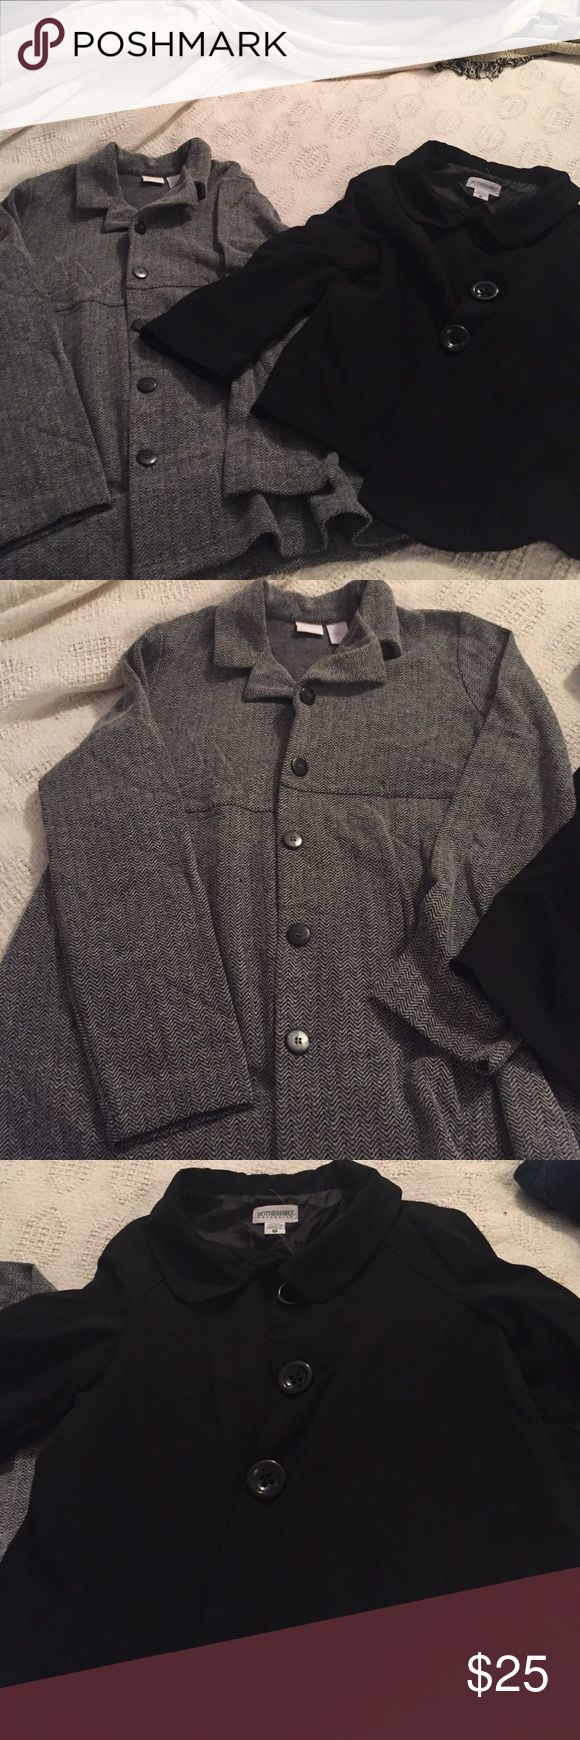 Maternity Work Blazers Two blazer style tops perfect for the office. The gray is nice and long to cover the belly, In Due Time Maternity. The black is shorter but open to give the belly plenty of room, Motherhood. Both size S. Jackets & Coats Blazers